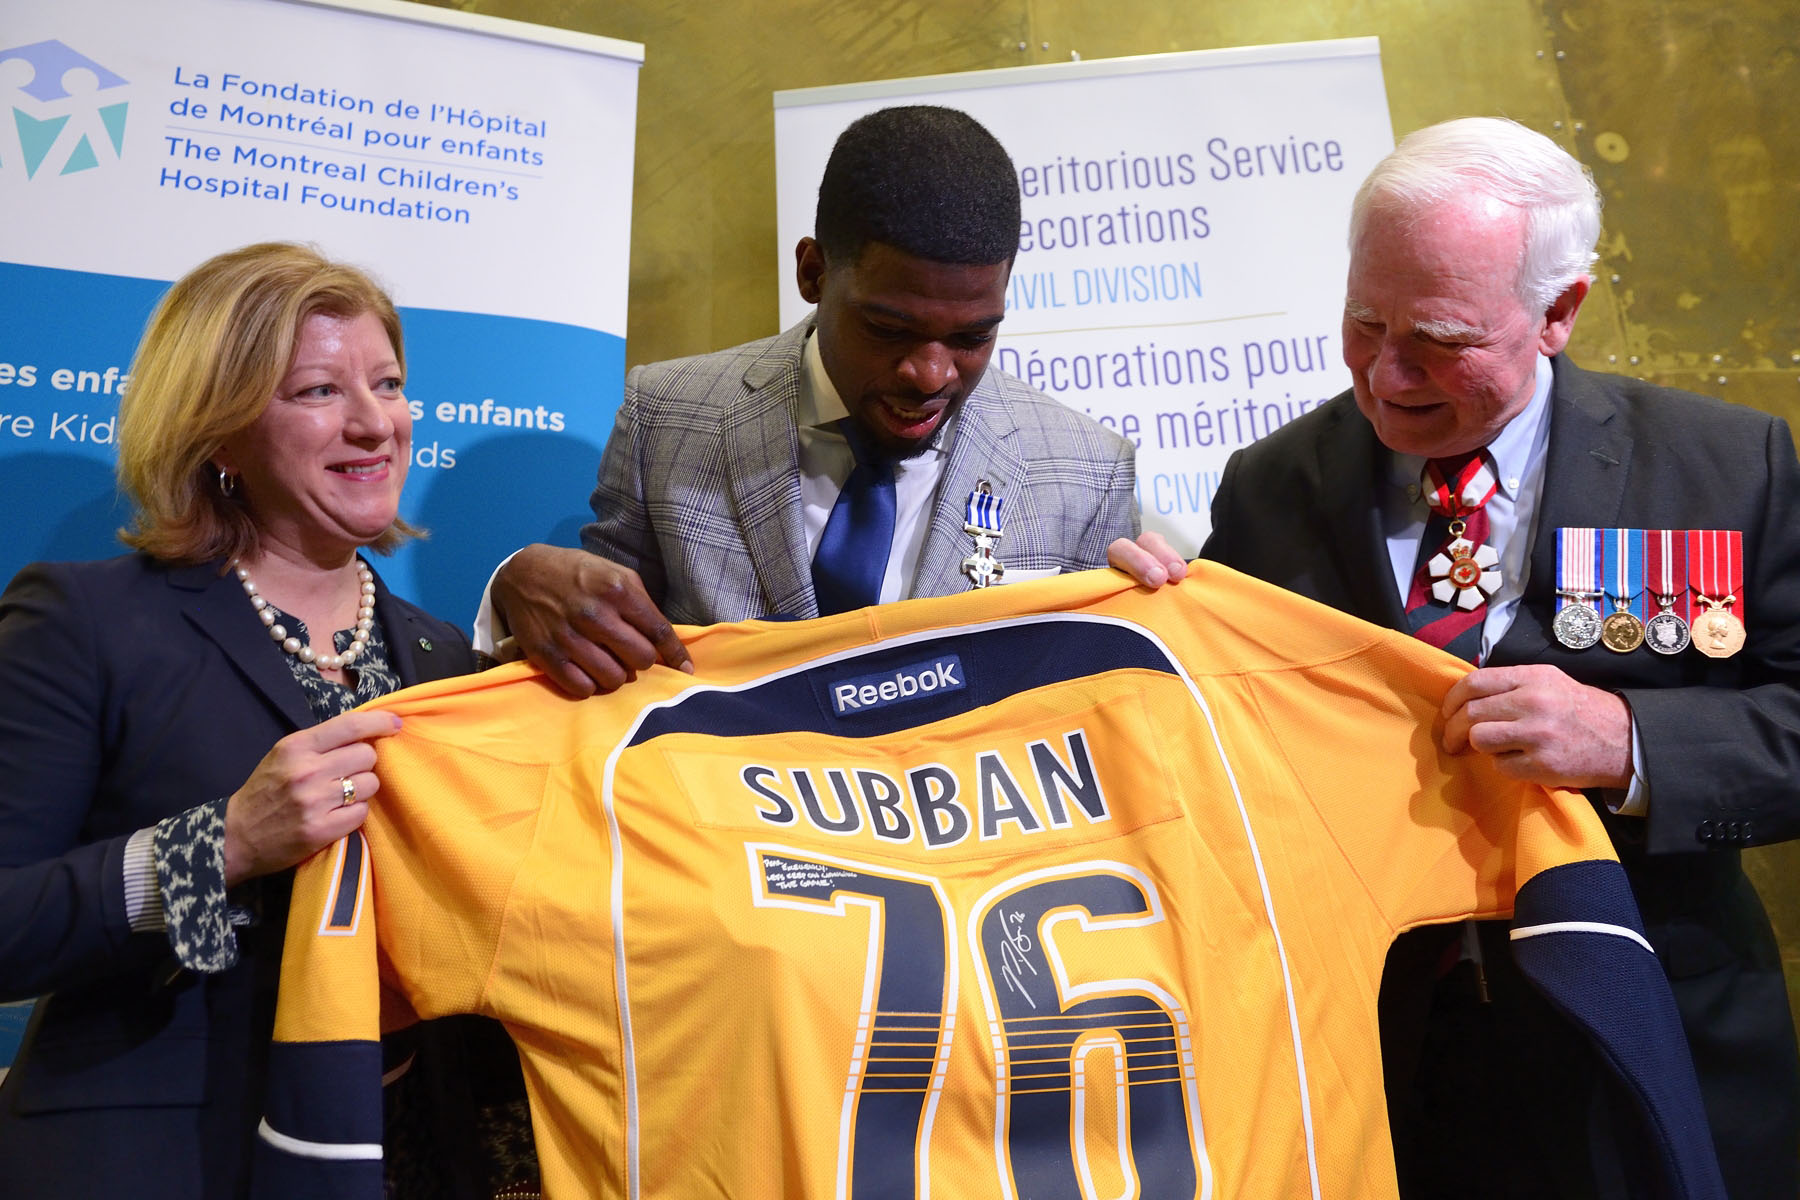 After the ceremony, the defenceman gave a Nashville Predators jersey to the Governor General.